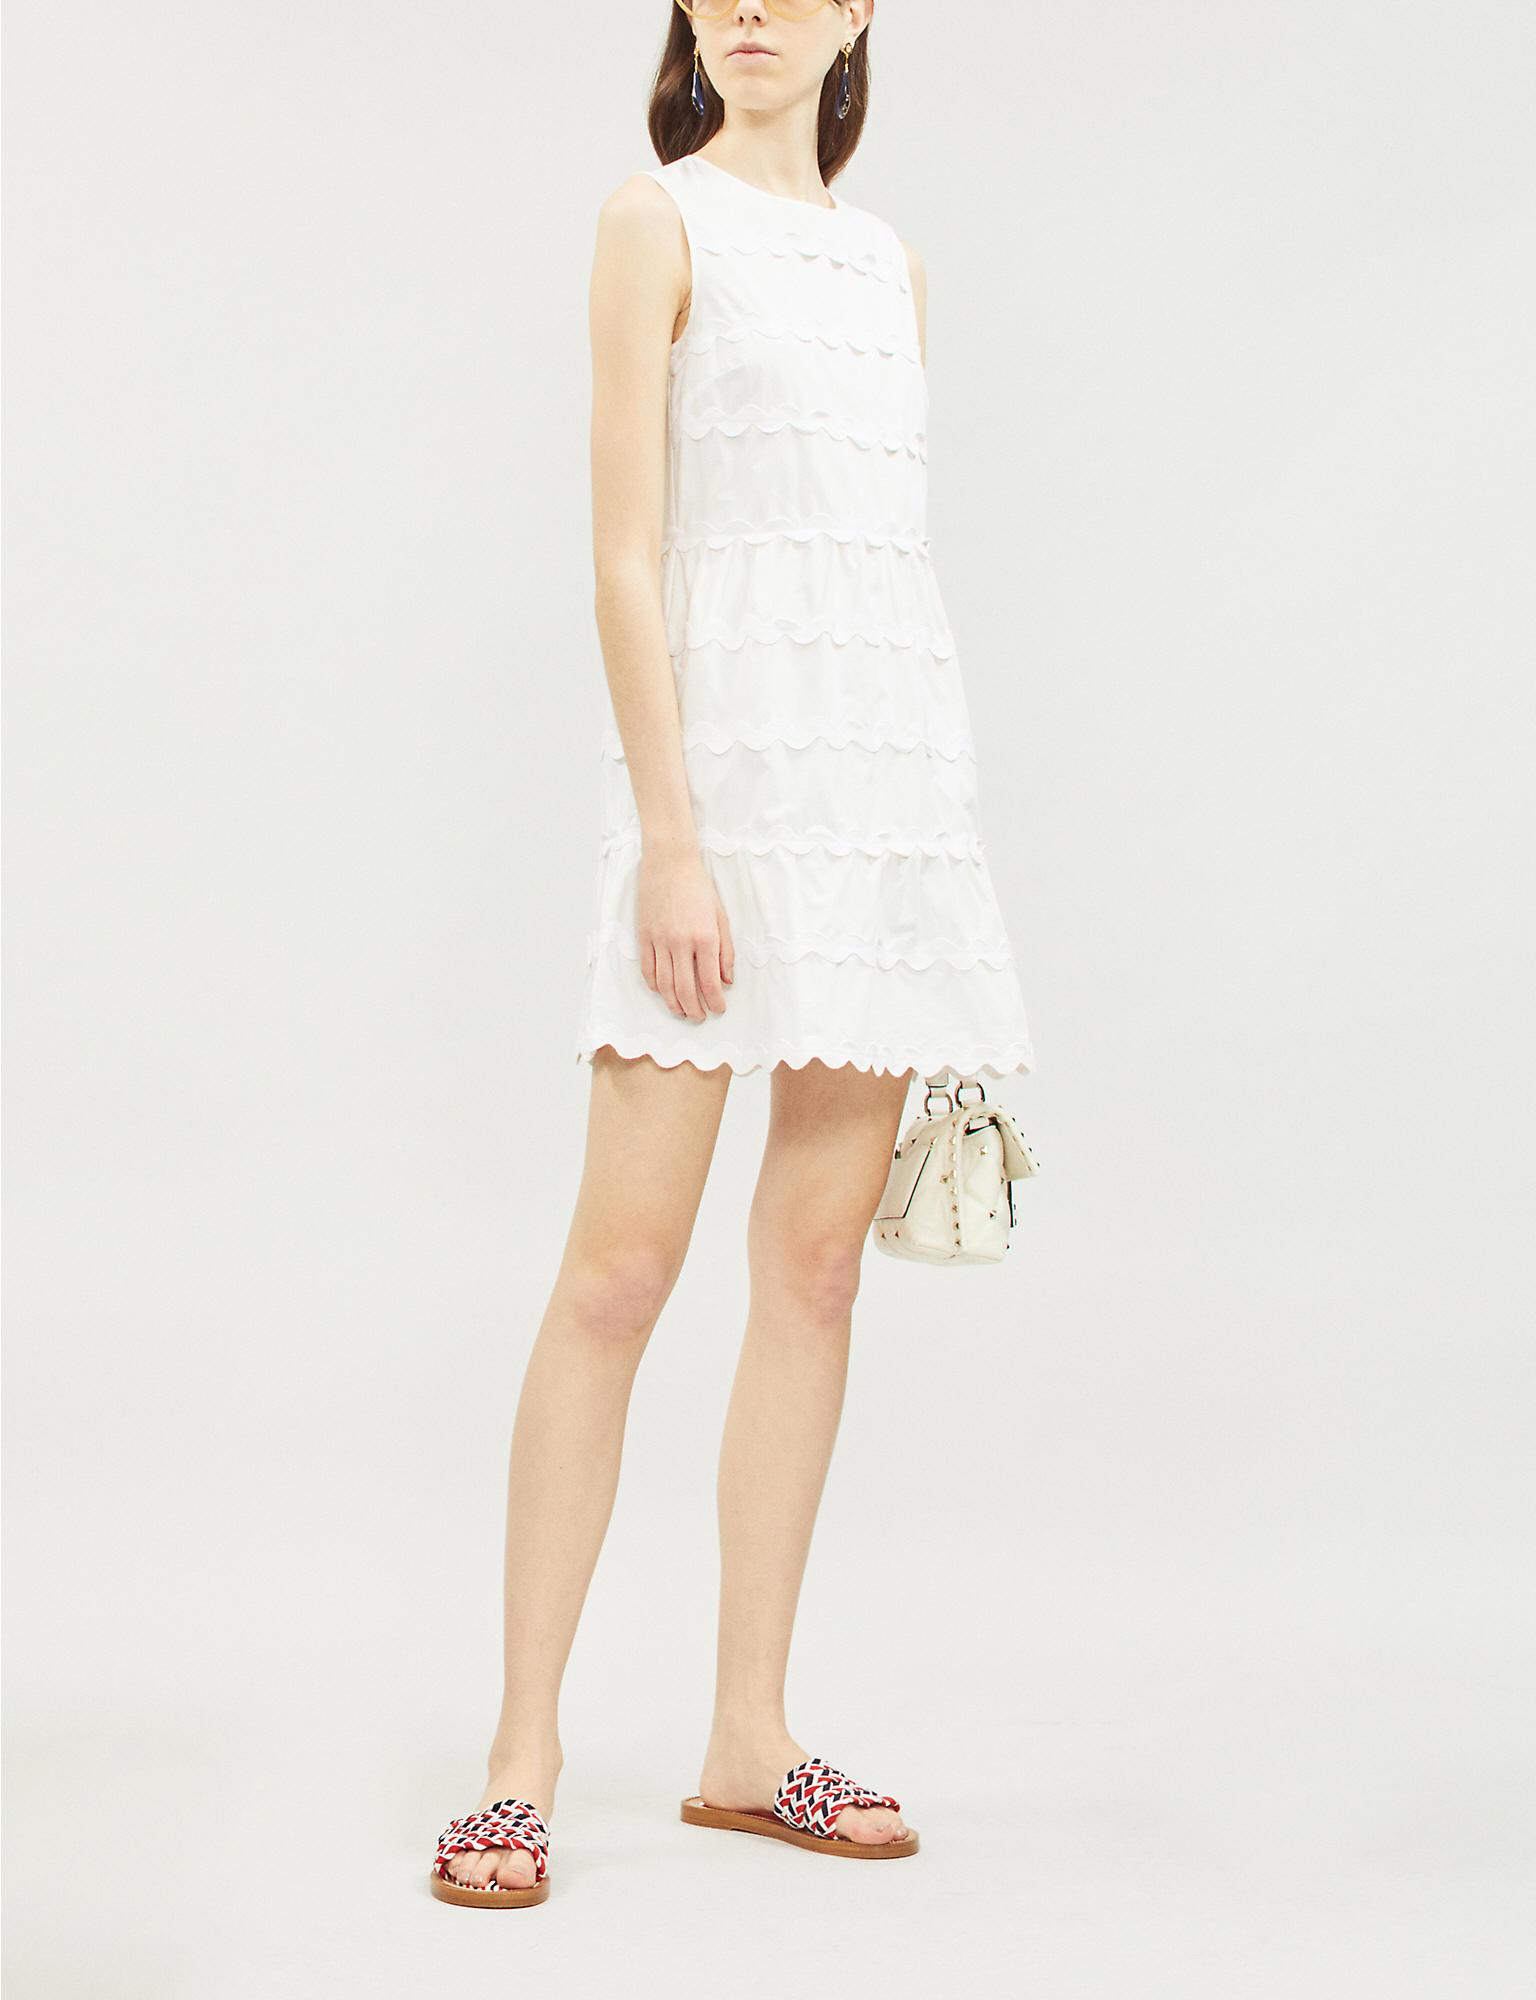 d325578f27f82 RED Valentino Scalloped-panel Cotton-crepe Dress in White - Lyst